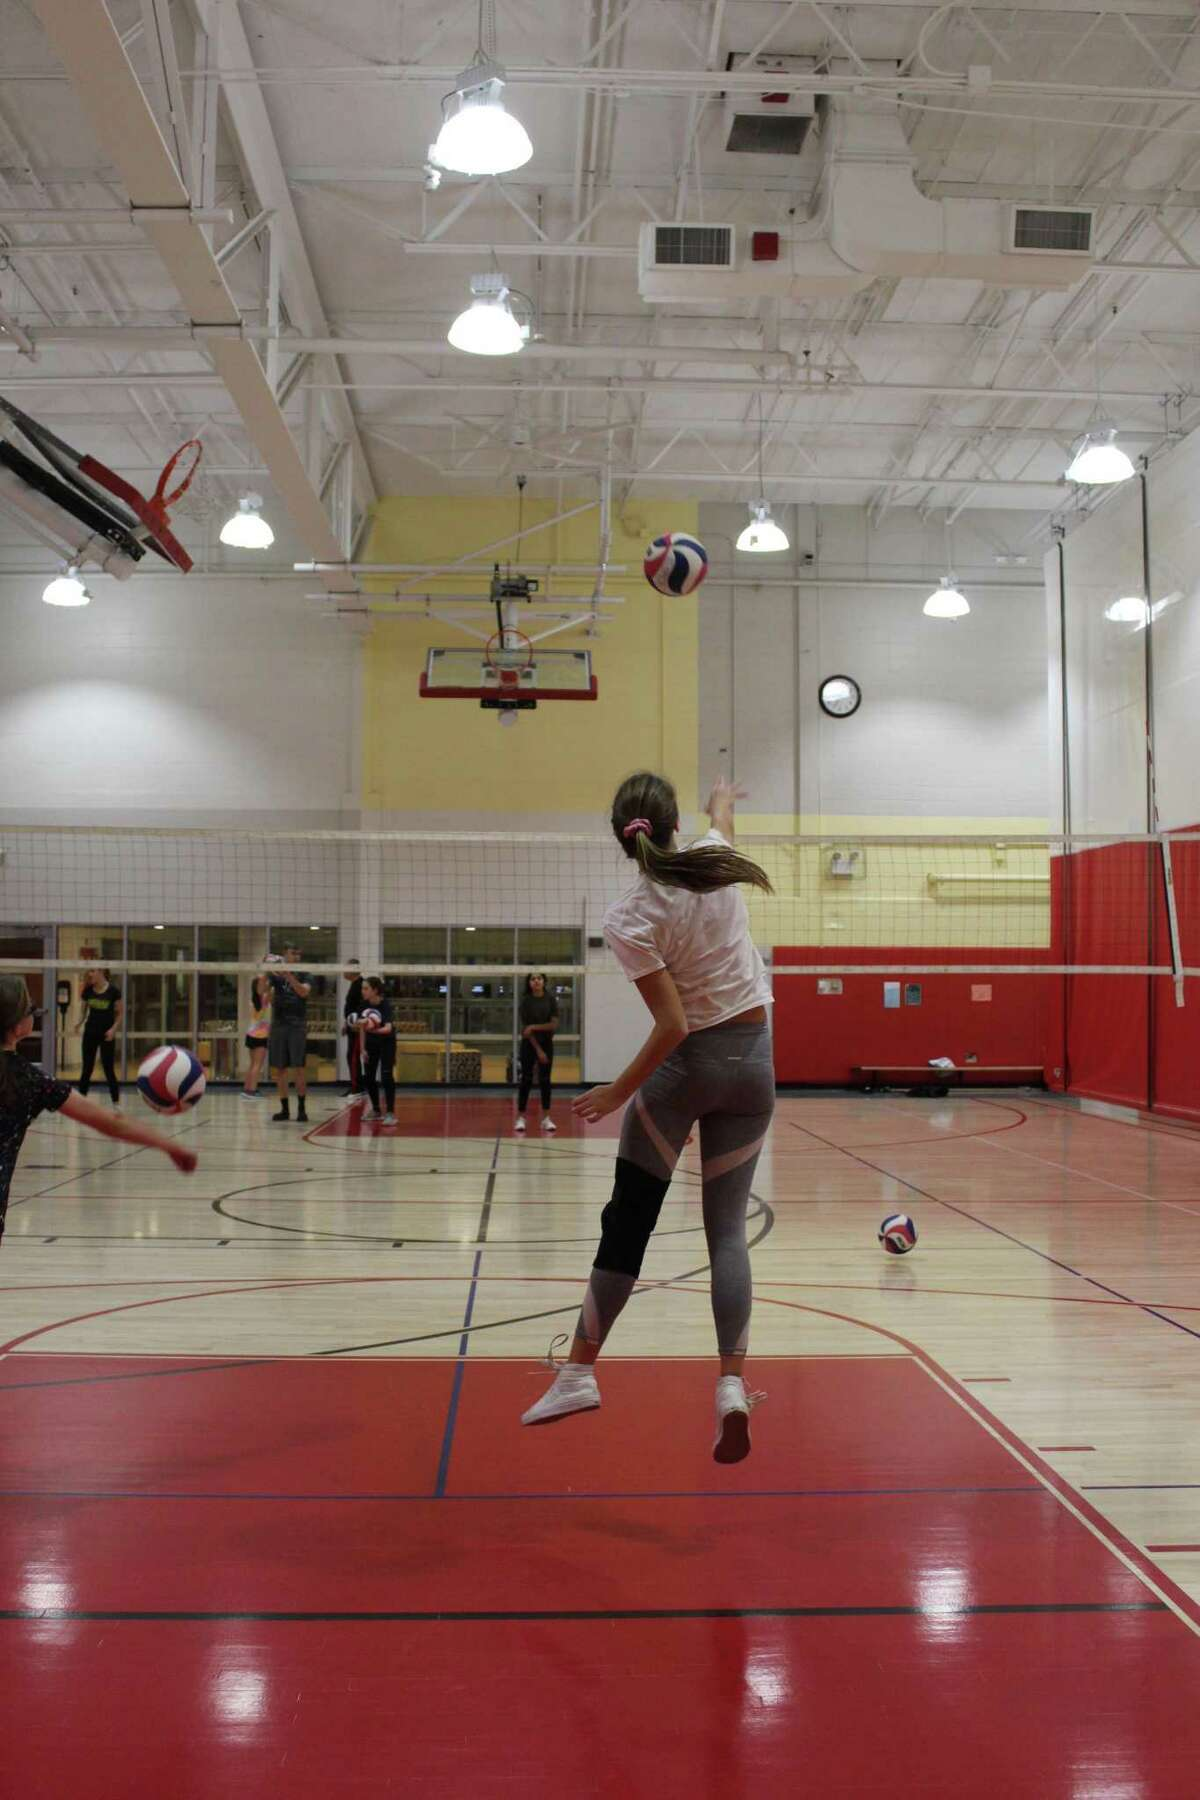 Registration for New Canaan YMCA spring classes begins on Monday, February 10, 2020.